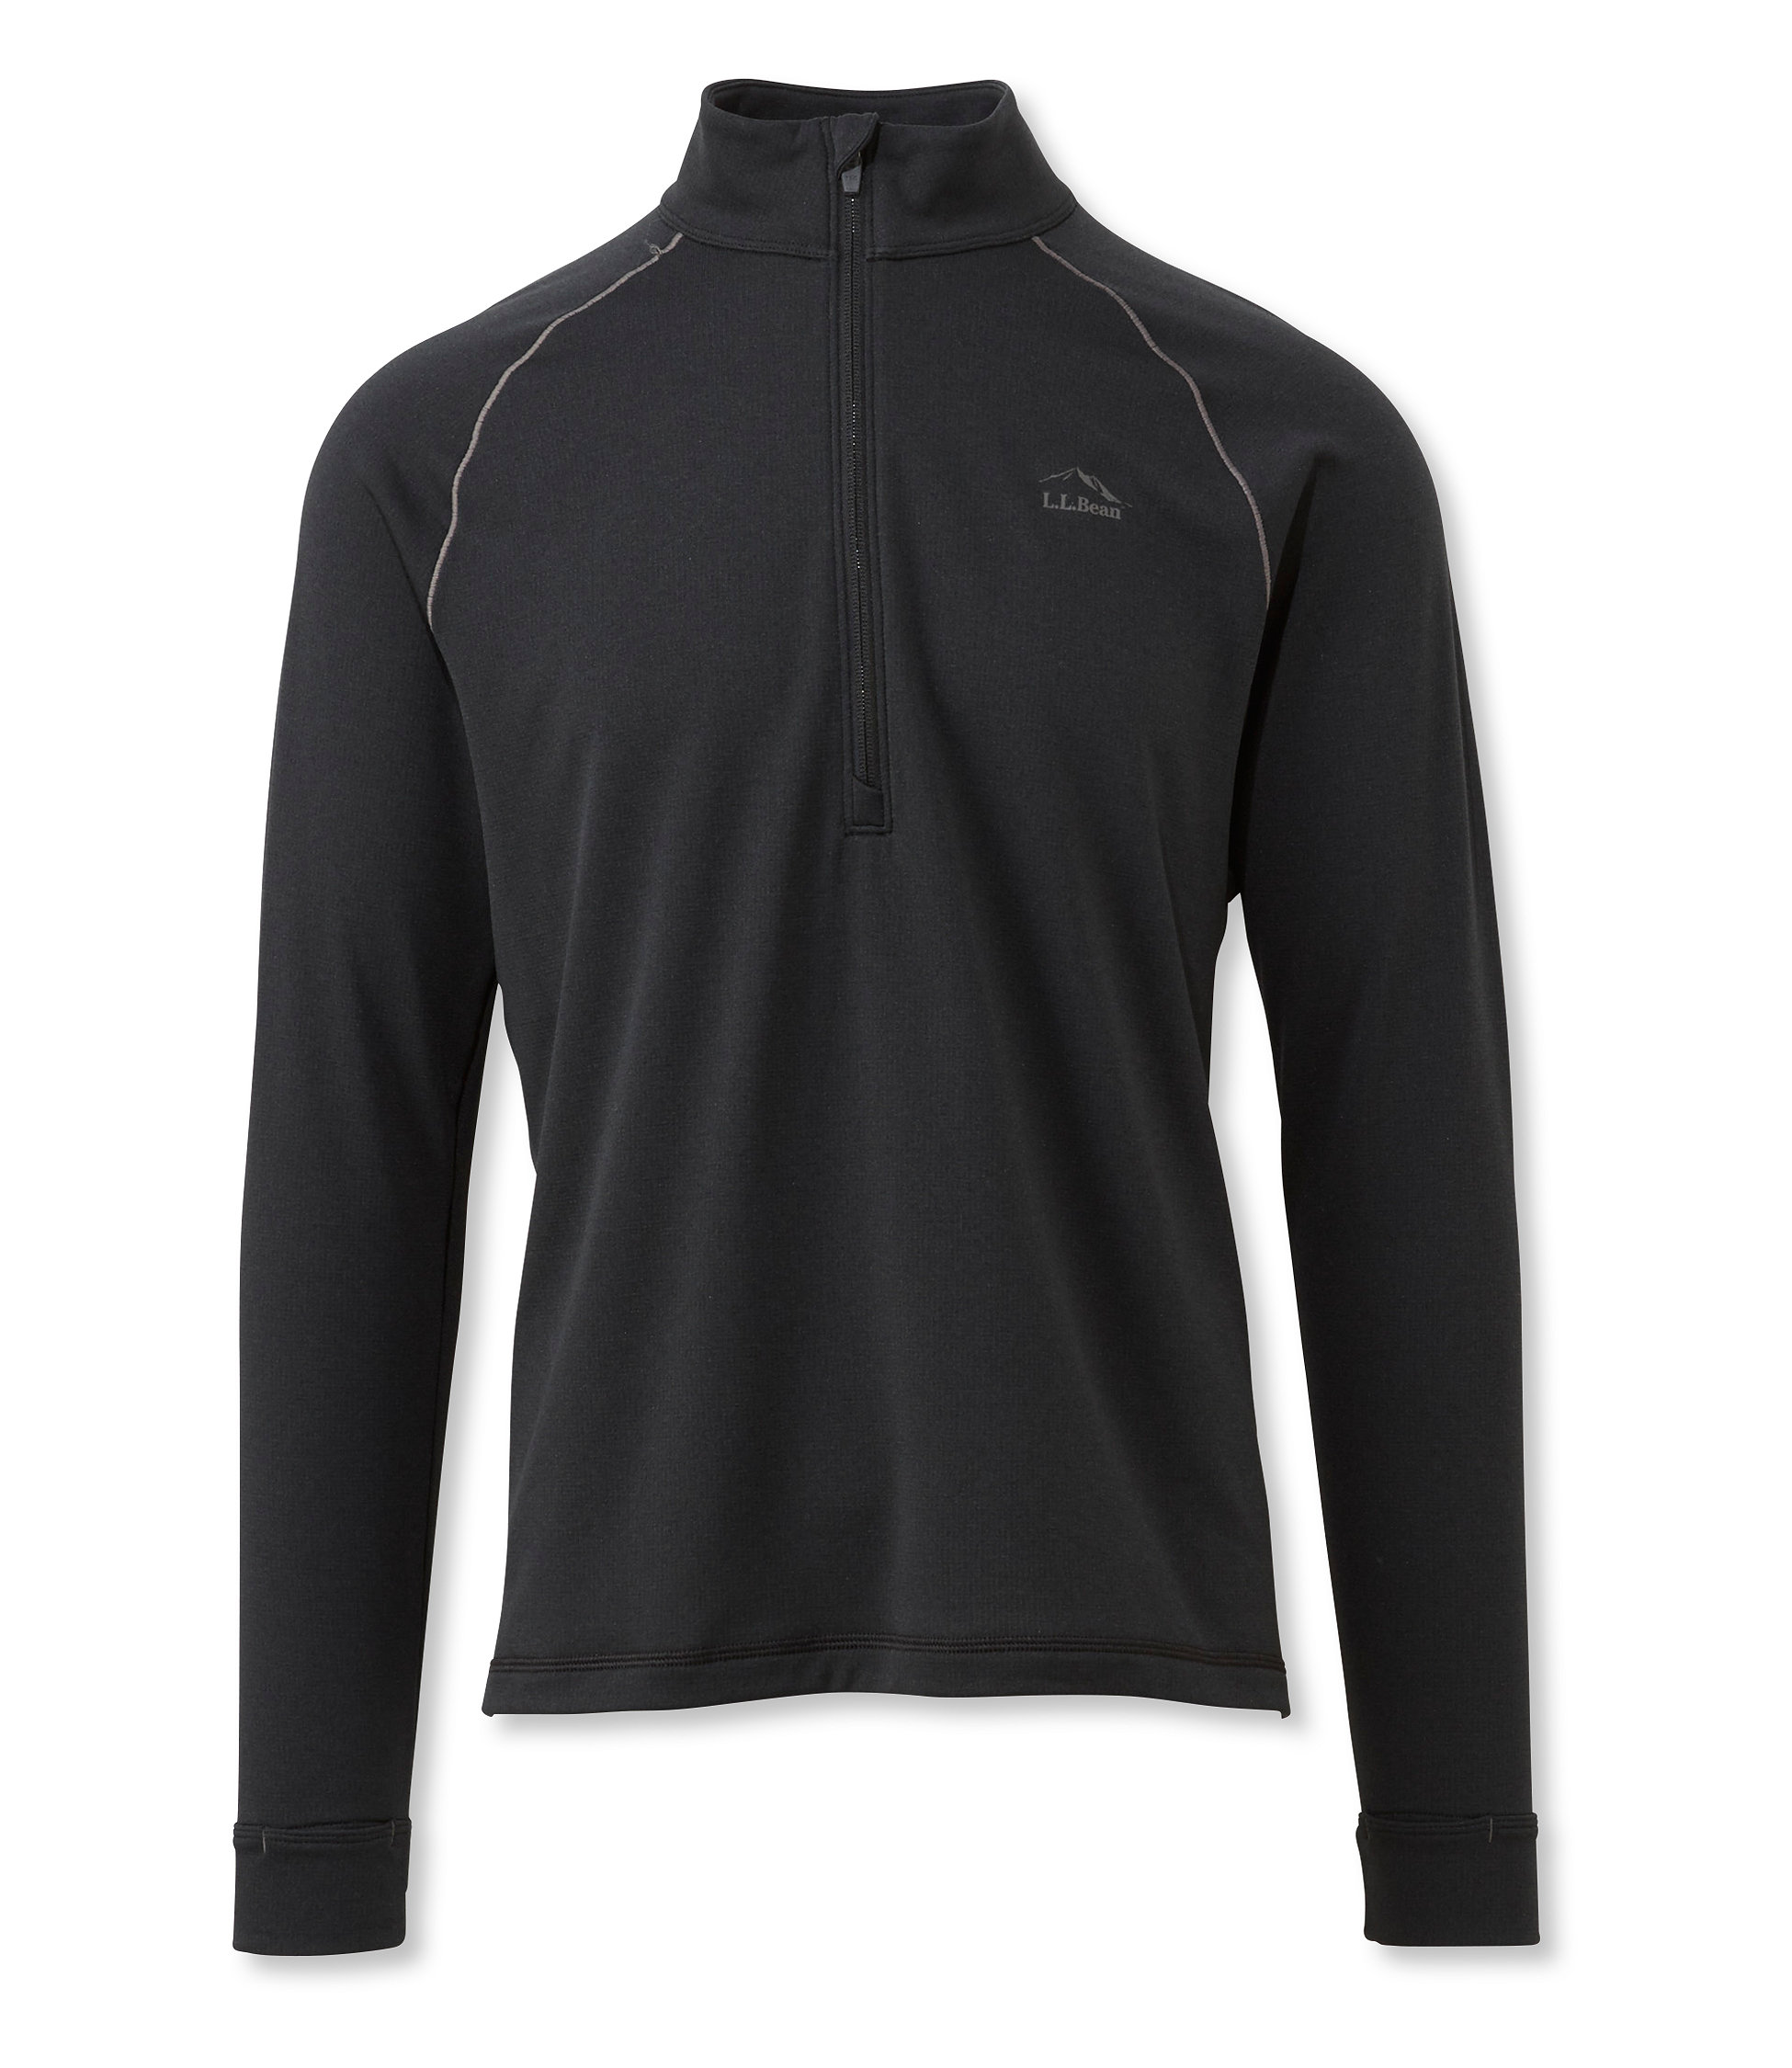 L.L.Bean Power Dry Stretch Base Layer, Expedition Weight Quarter-Zip